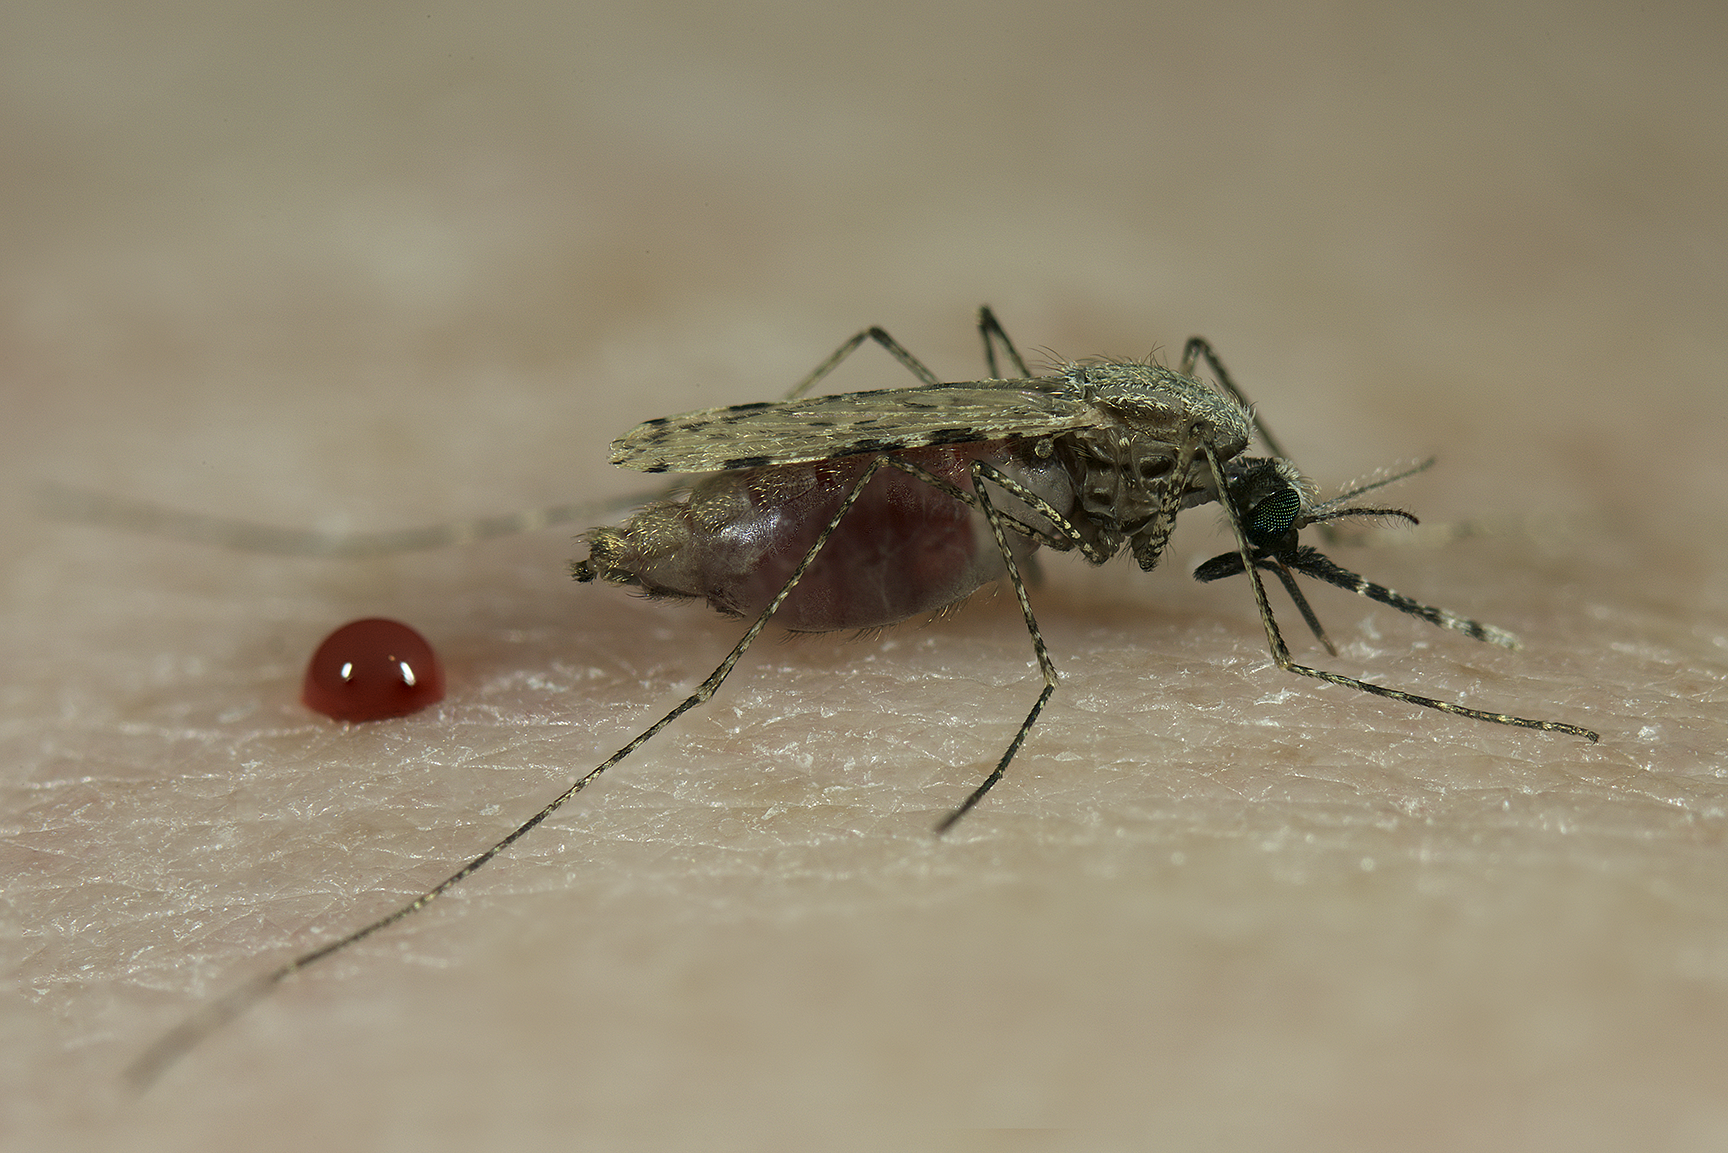 A female Anopheles stephensi mosquito taking a blood meal.   [Sinclair Stammers,  www. micromacro  .co.uk]